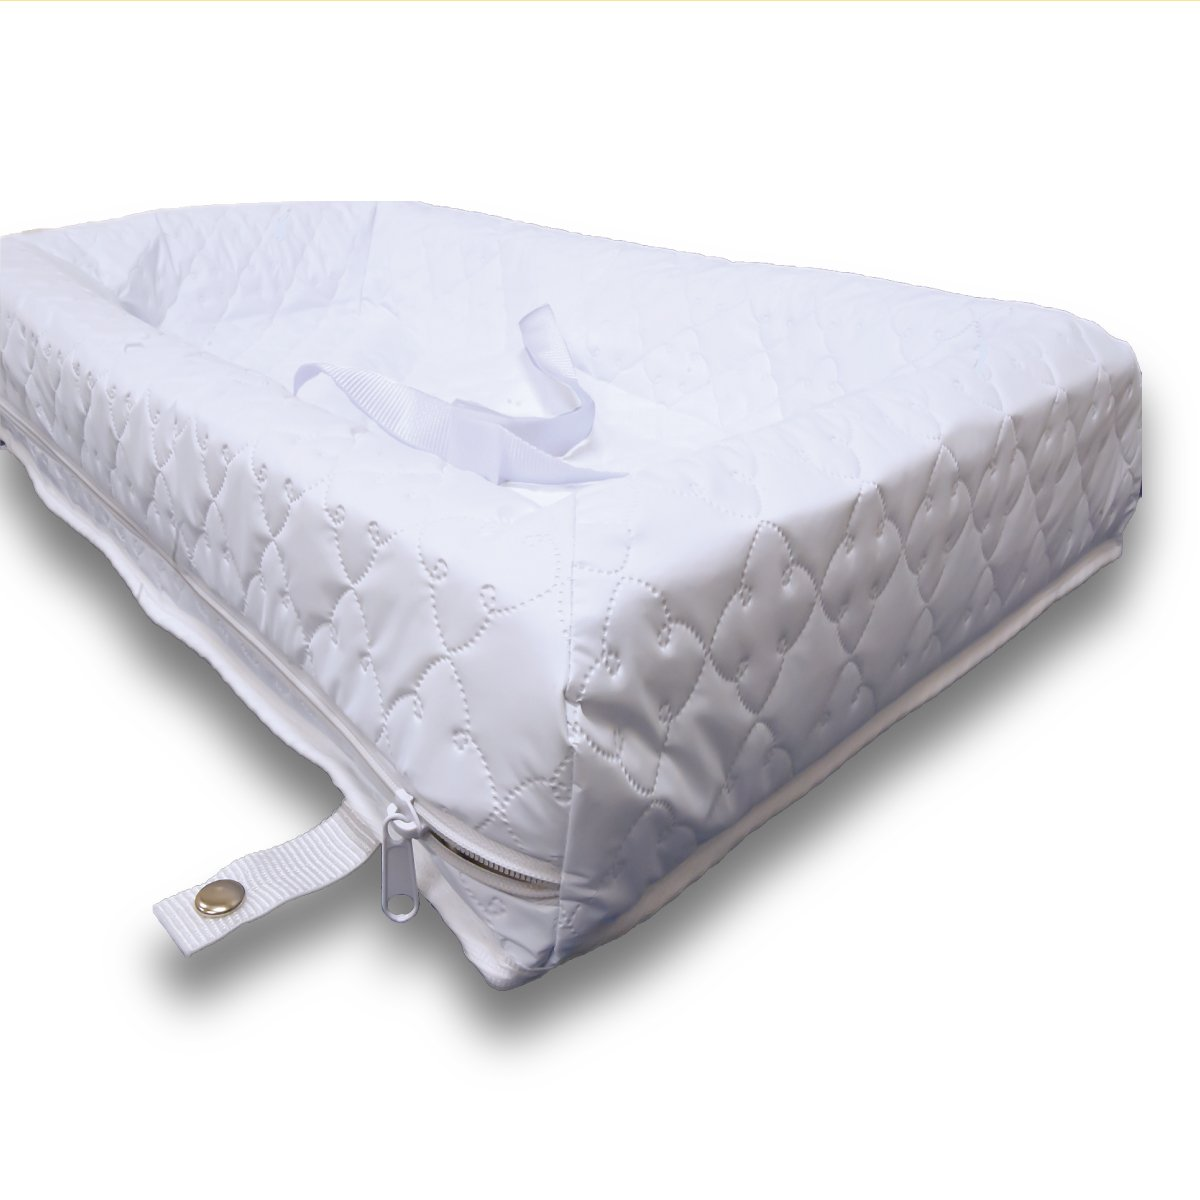 Rumble Tuff Zipped Contour Changing Pad, White, Compact